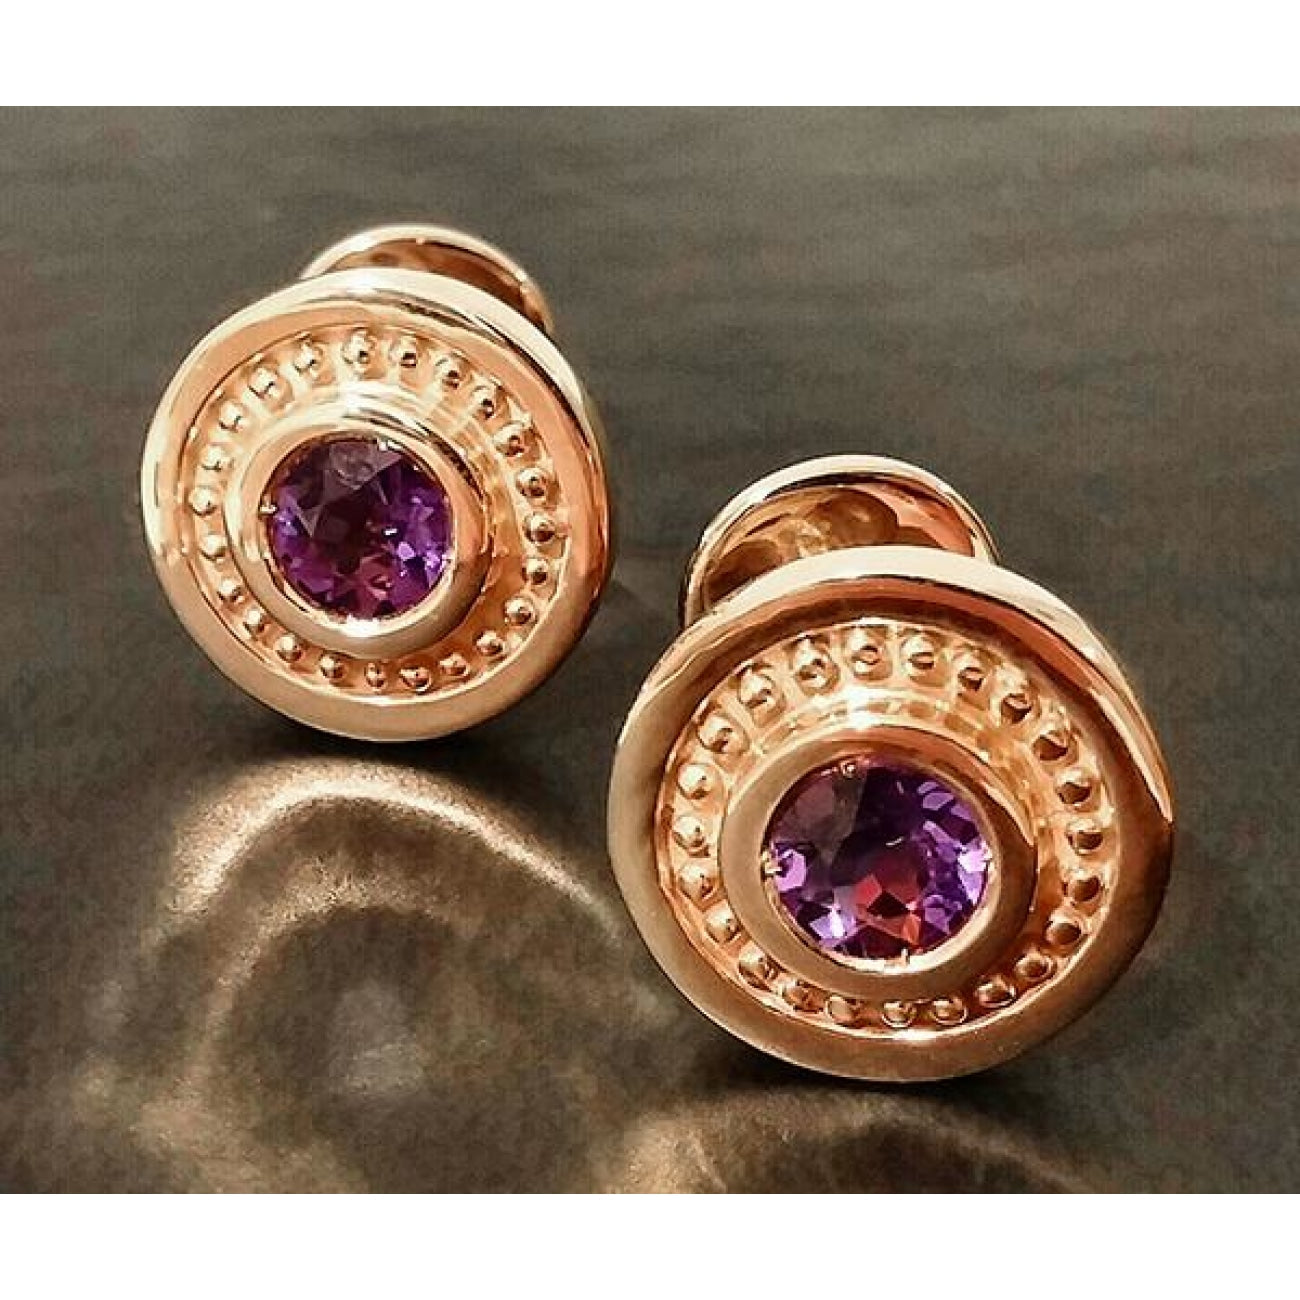 Manfredi Jewels Jewelry - Baz w/ amethyst plated | Manfredi Jewels